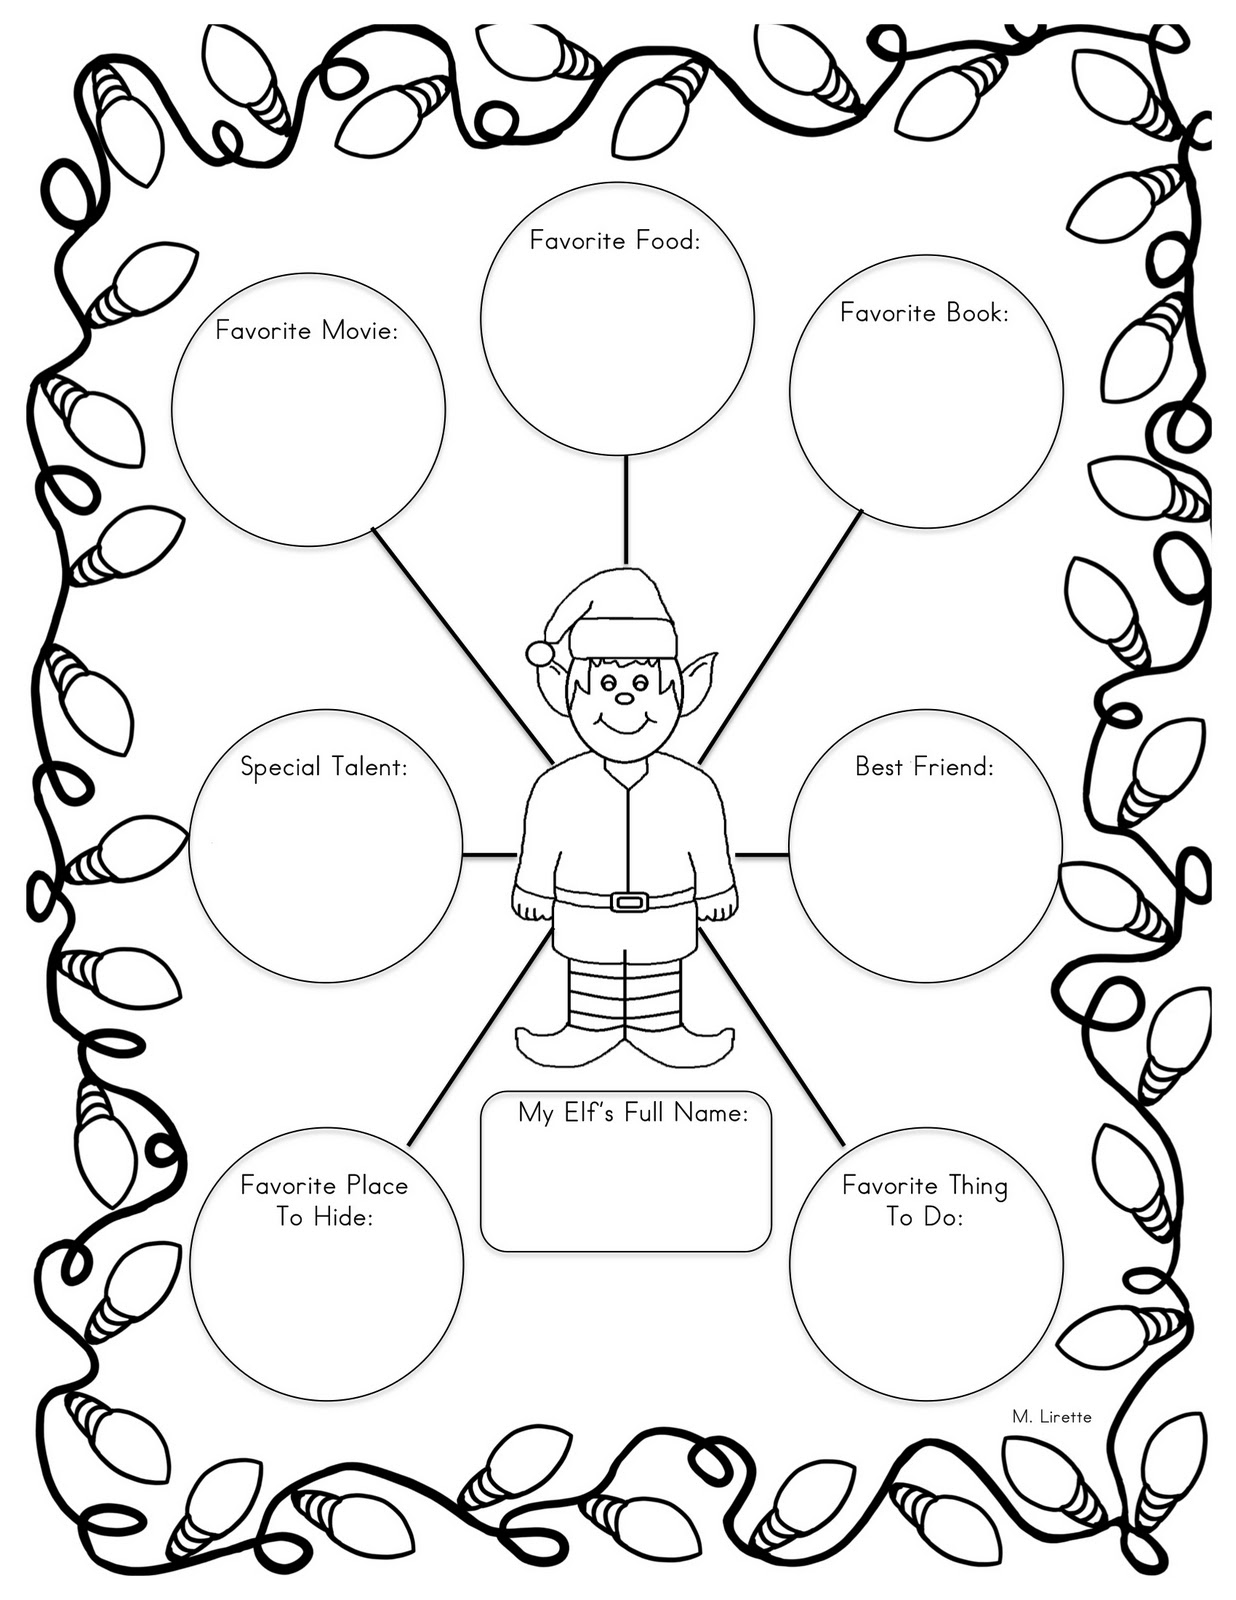 Mrs. Lirette's Learning Detectives: Elf in the Classroom